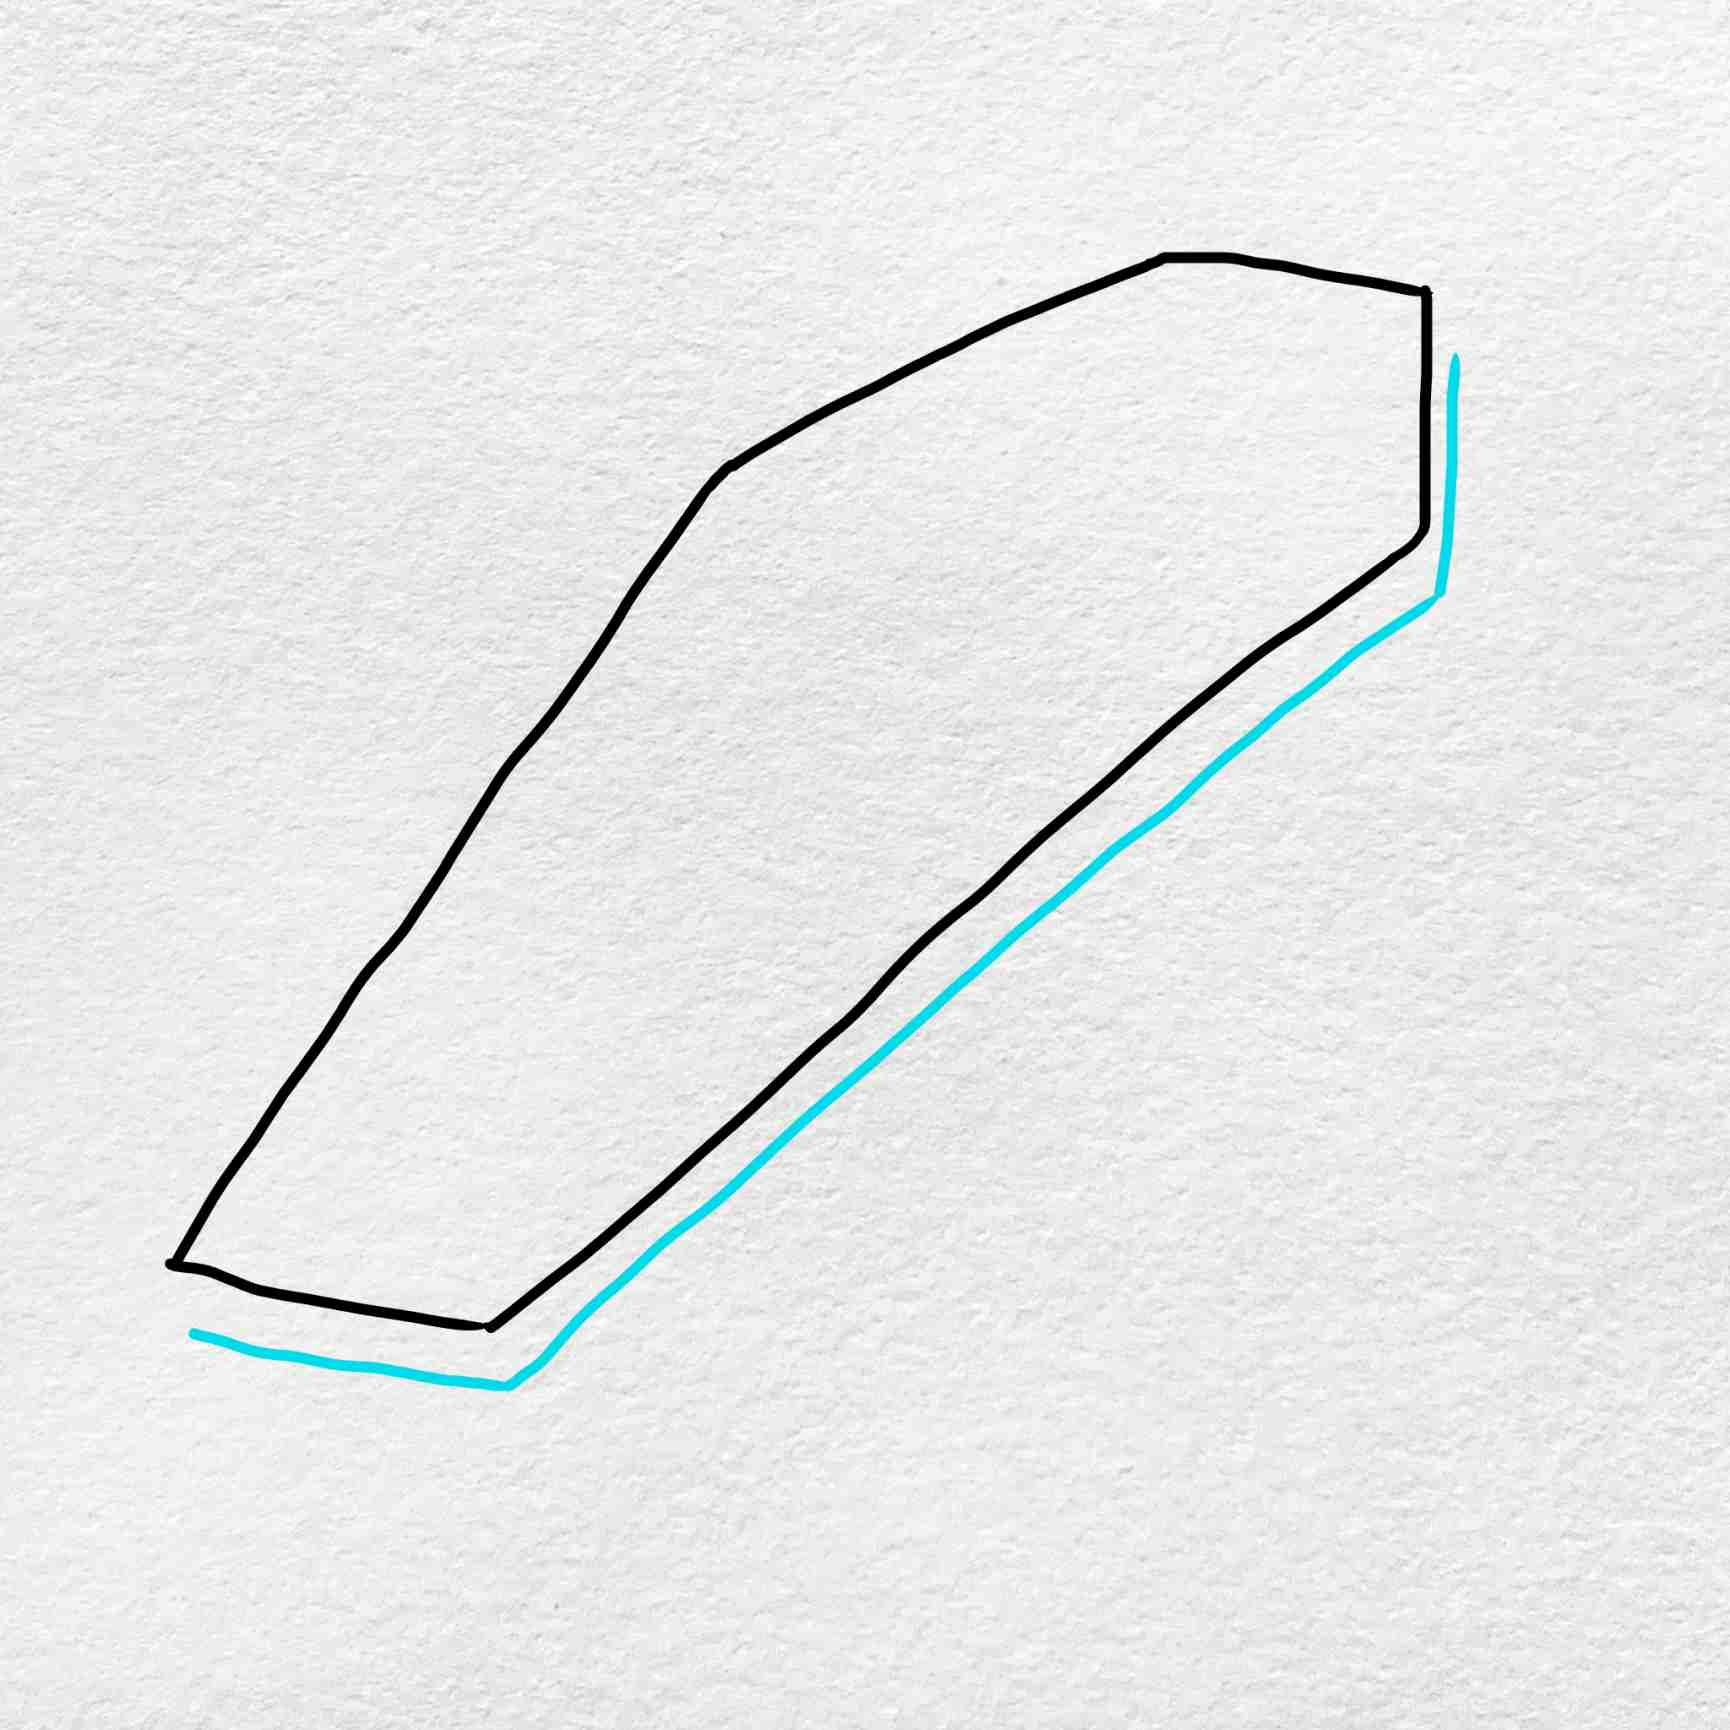 How To Draw A Coffin: Step 3